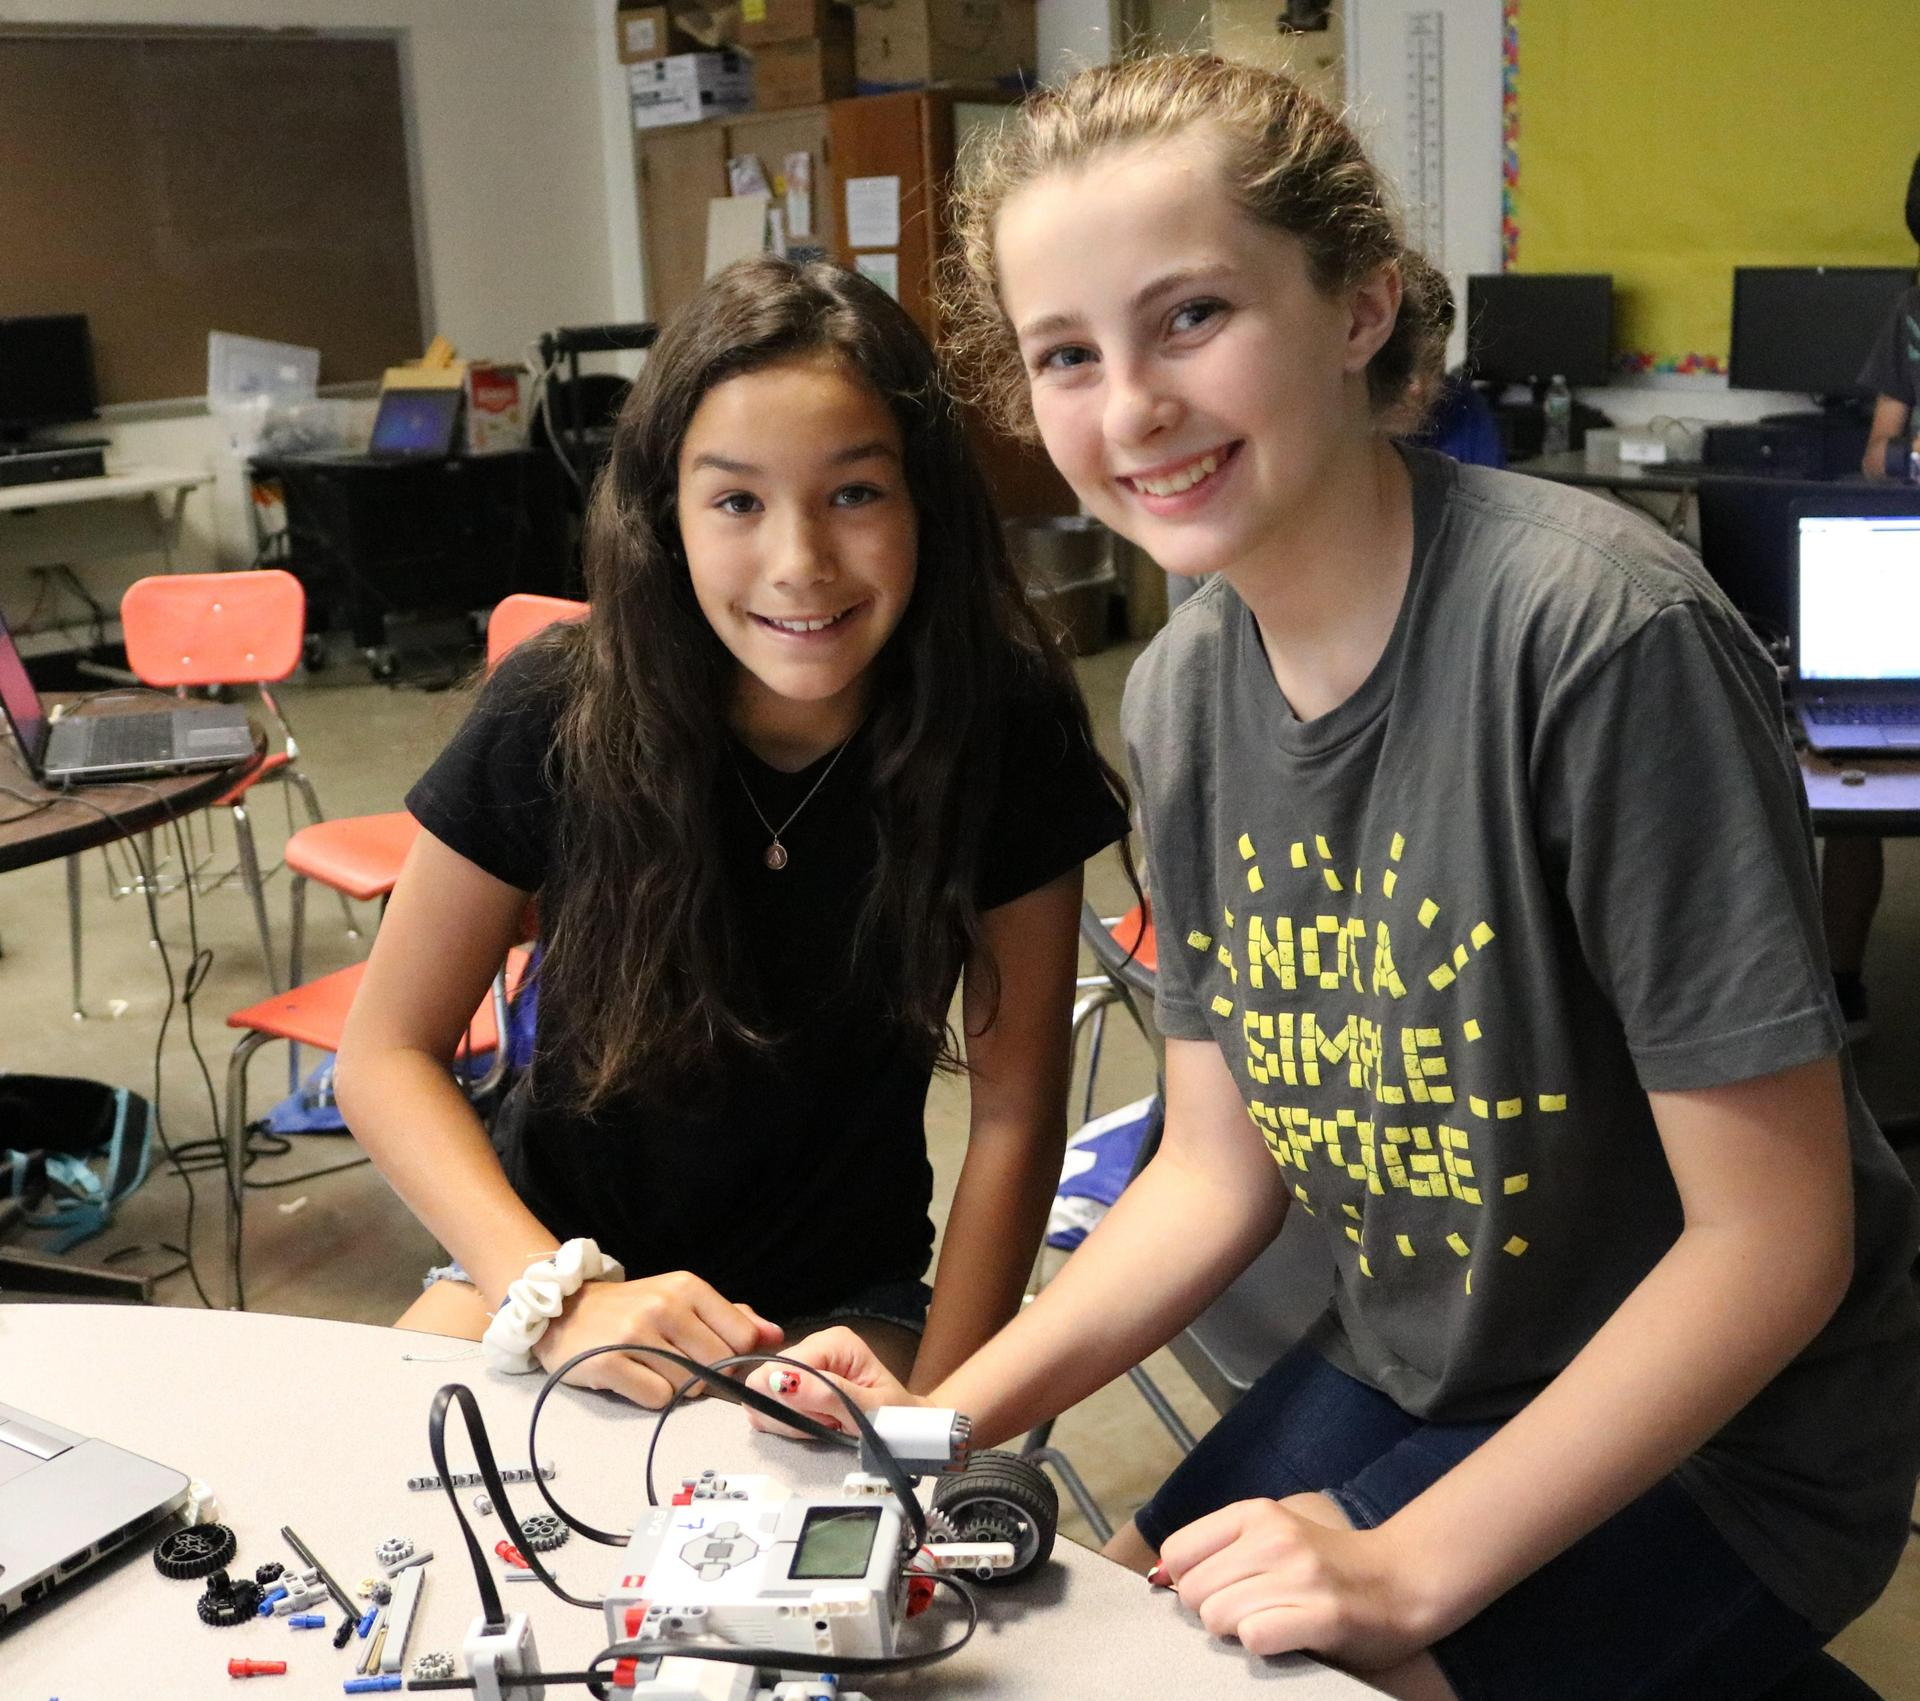 Students in Robotics class at STEM Camp.